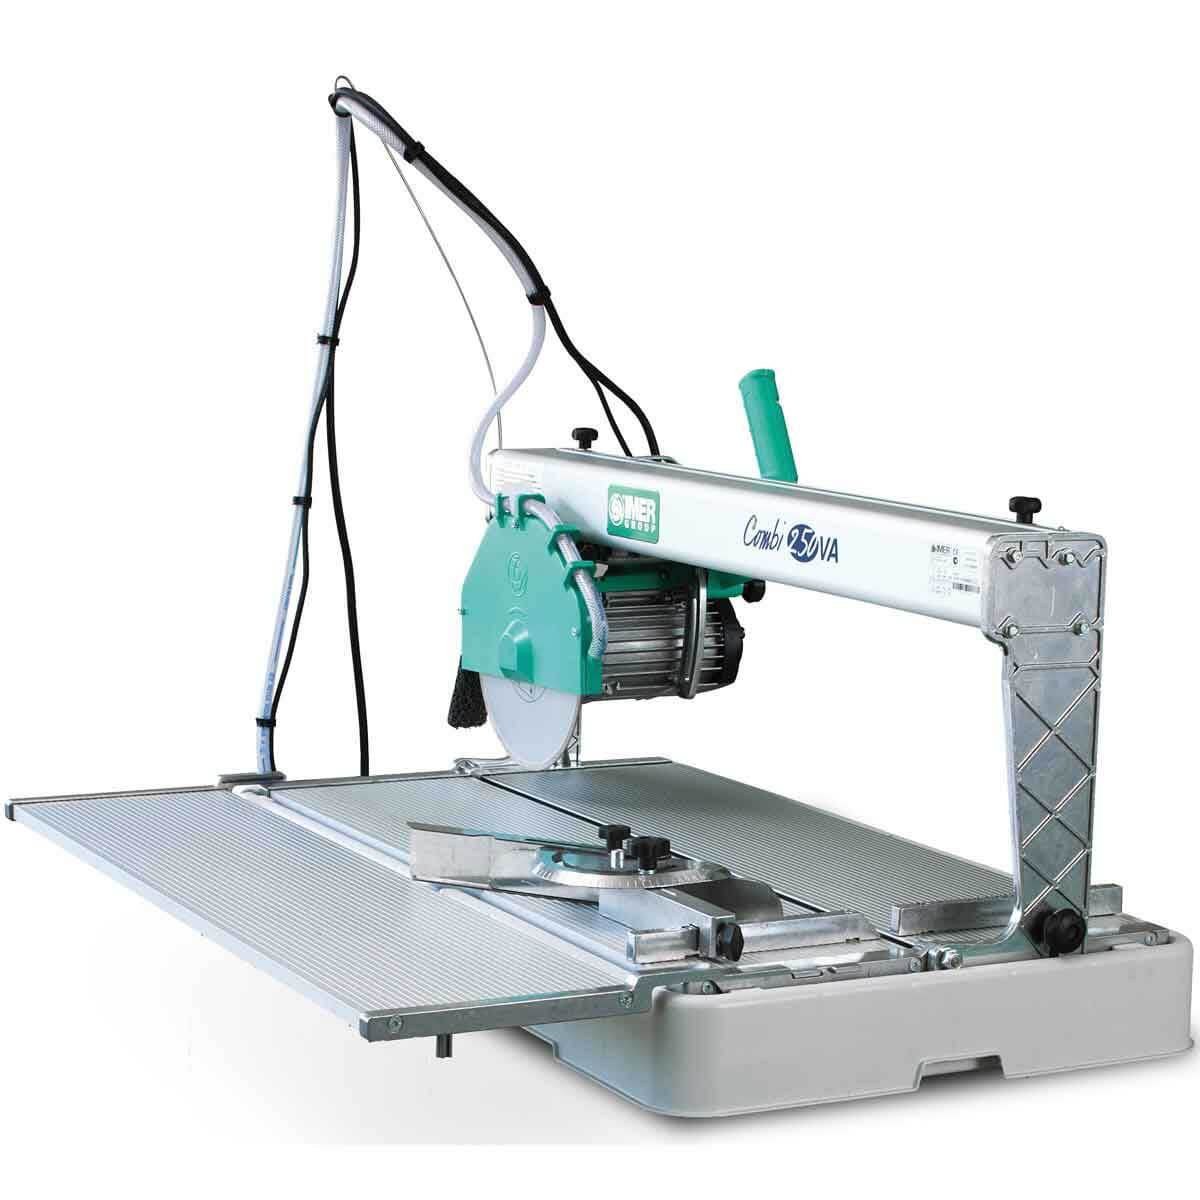 Imer Combi 250VA saw with side extension table